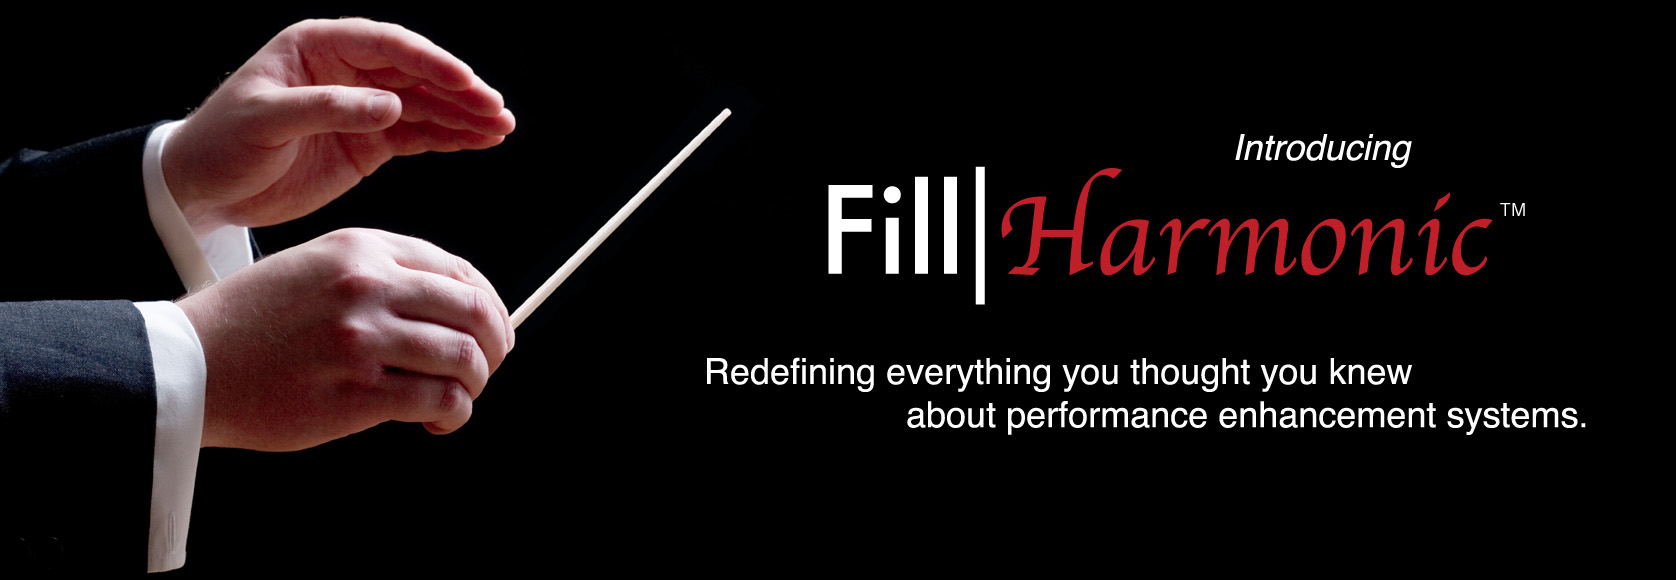 Introducing Fill|Harmonic - Redefining everything you thought you knew about performance enhancement systems.